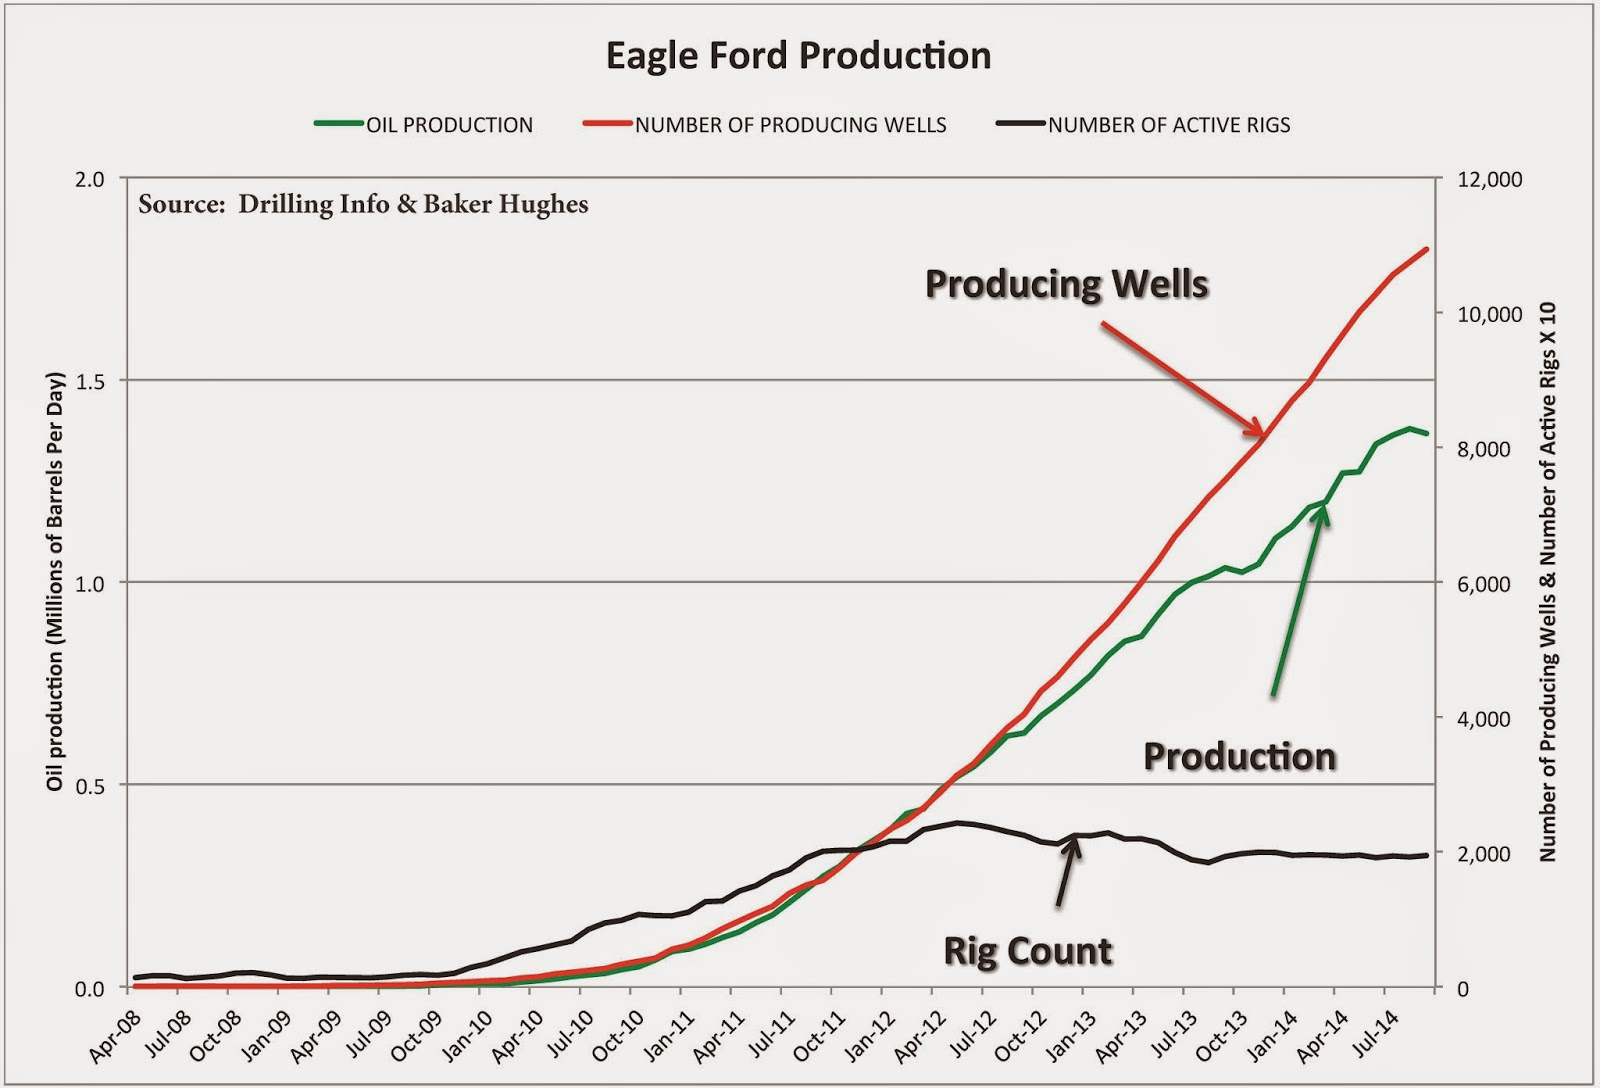 US Oil Rig Count Historical Data